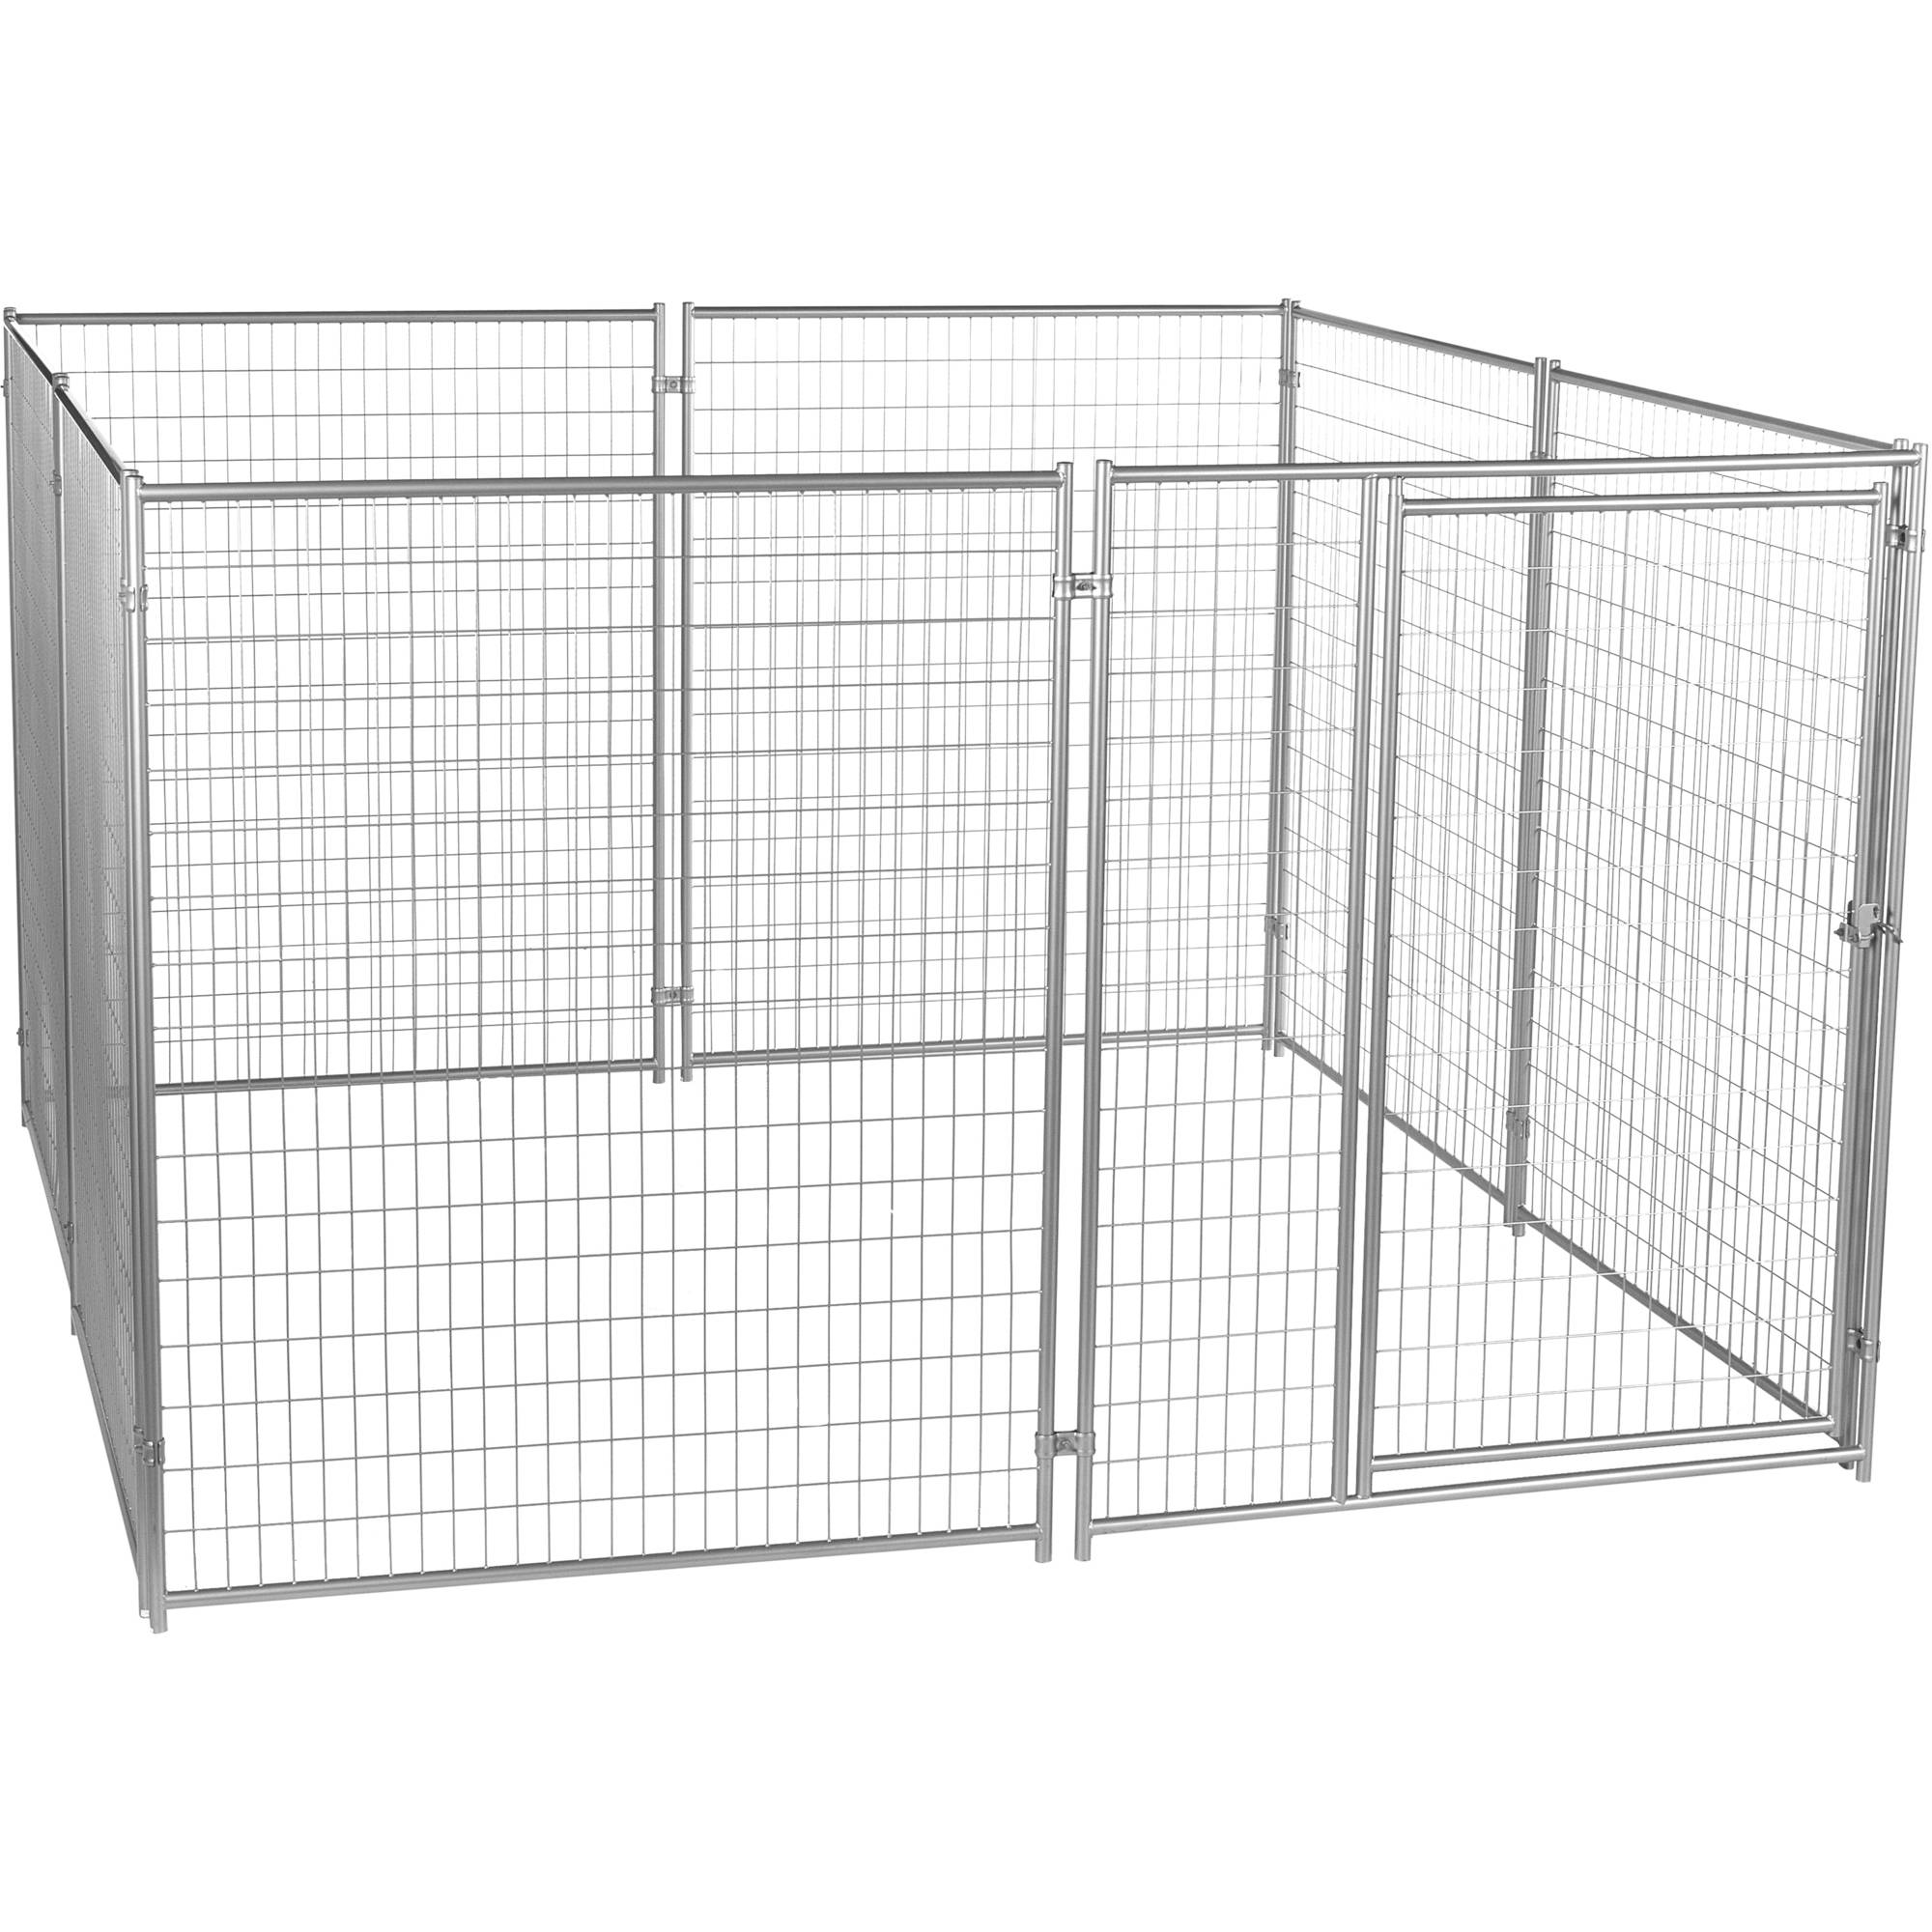 Lucky Dog 6'H x 10'W x 10'L Modular Welded Wire Kennel Kit